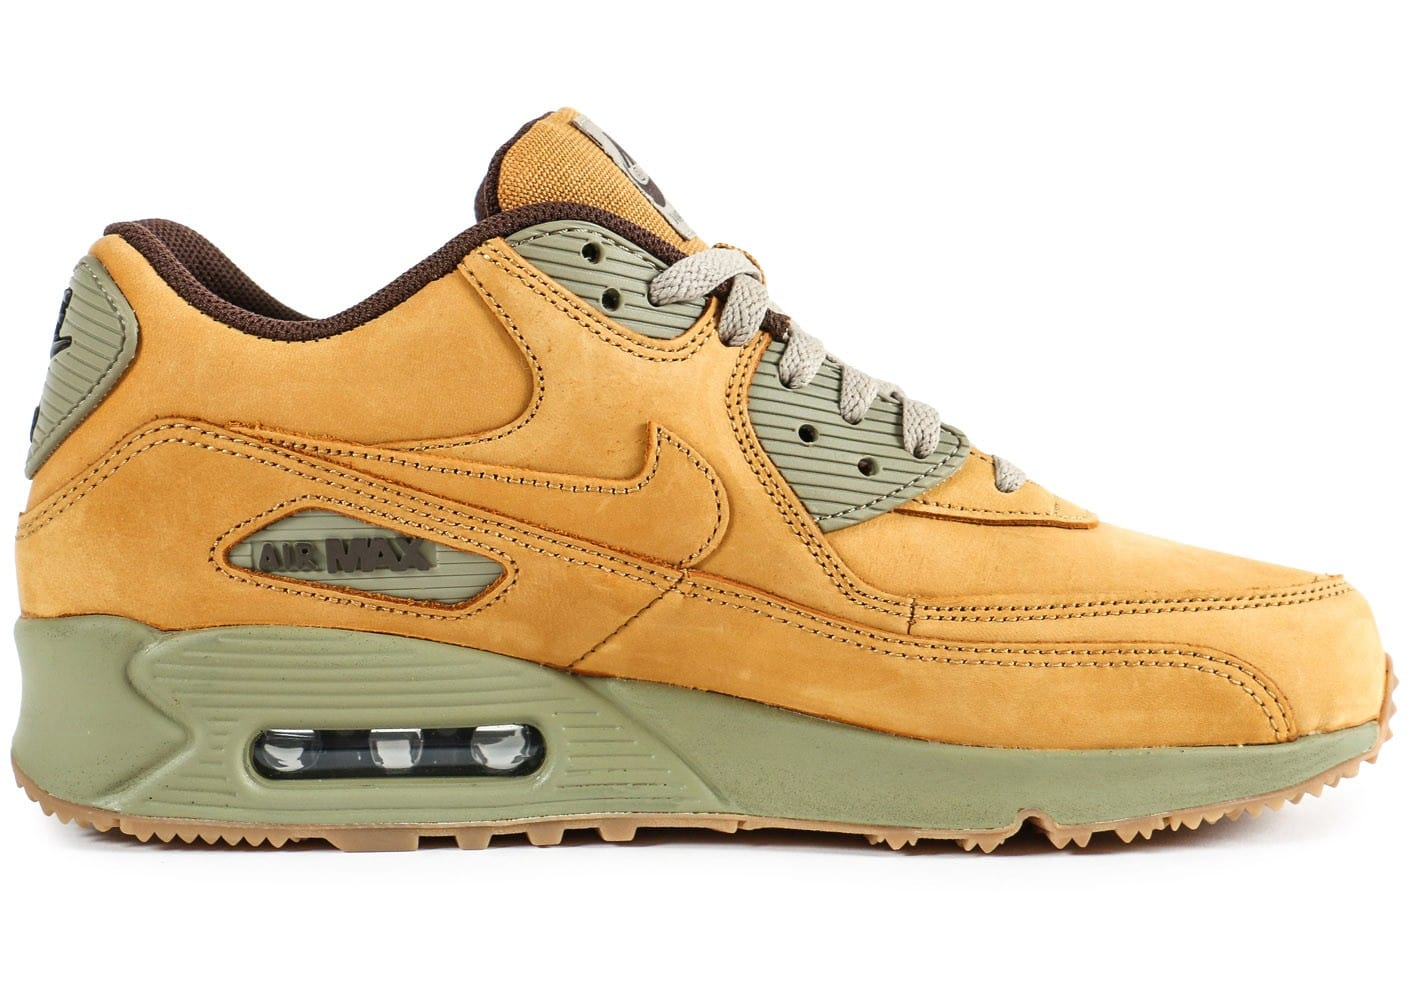 nike air max 90 winter wheat chaussures homme chausport. Black Bedroom Furniture Sets. Home Design Ideas